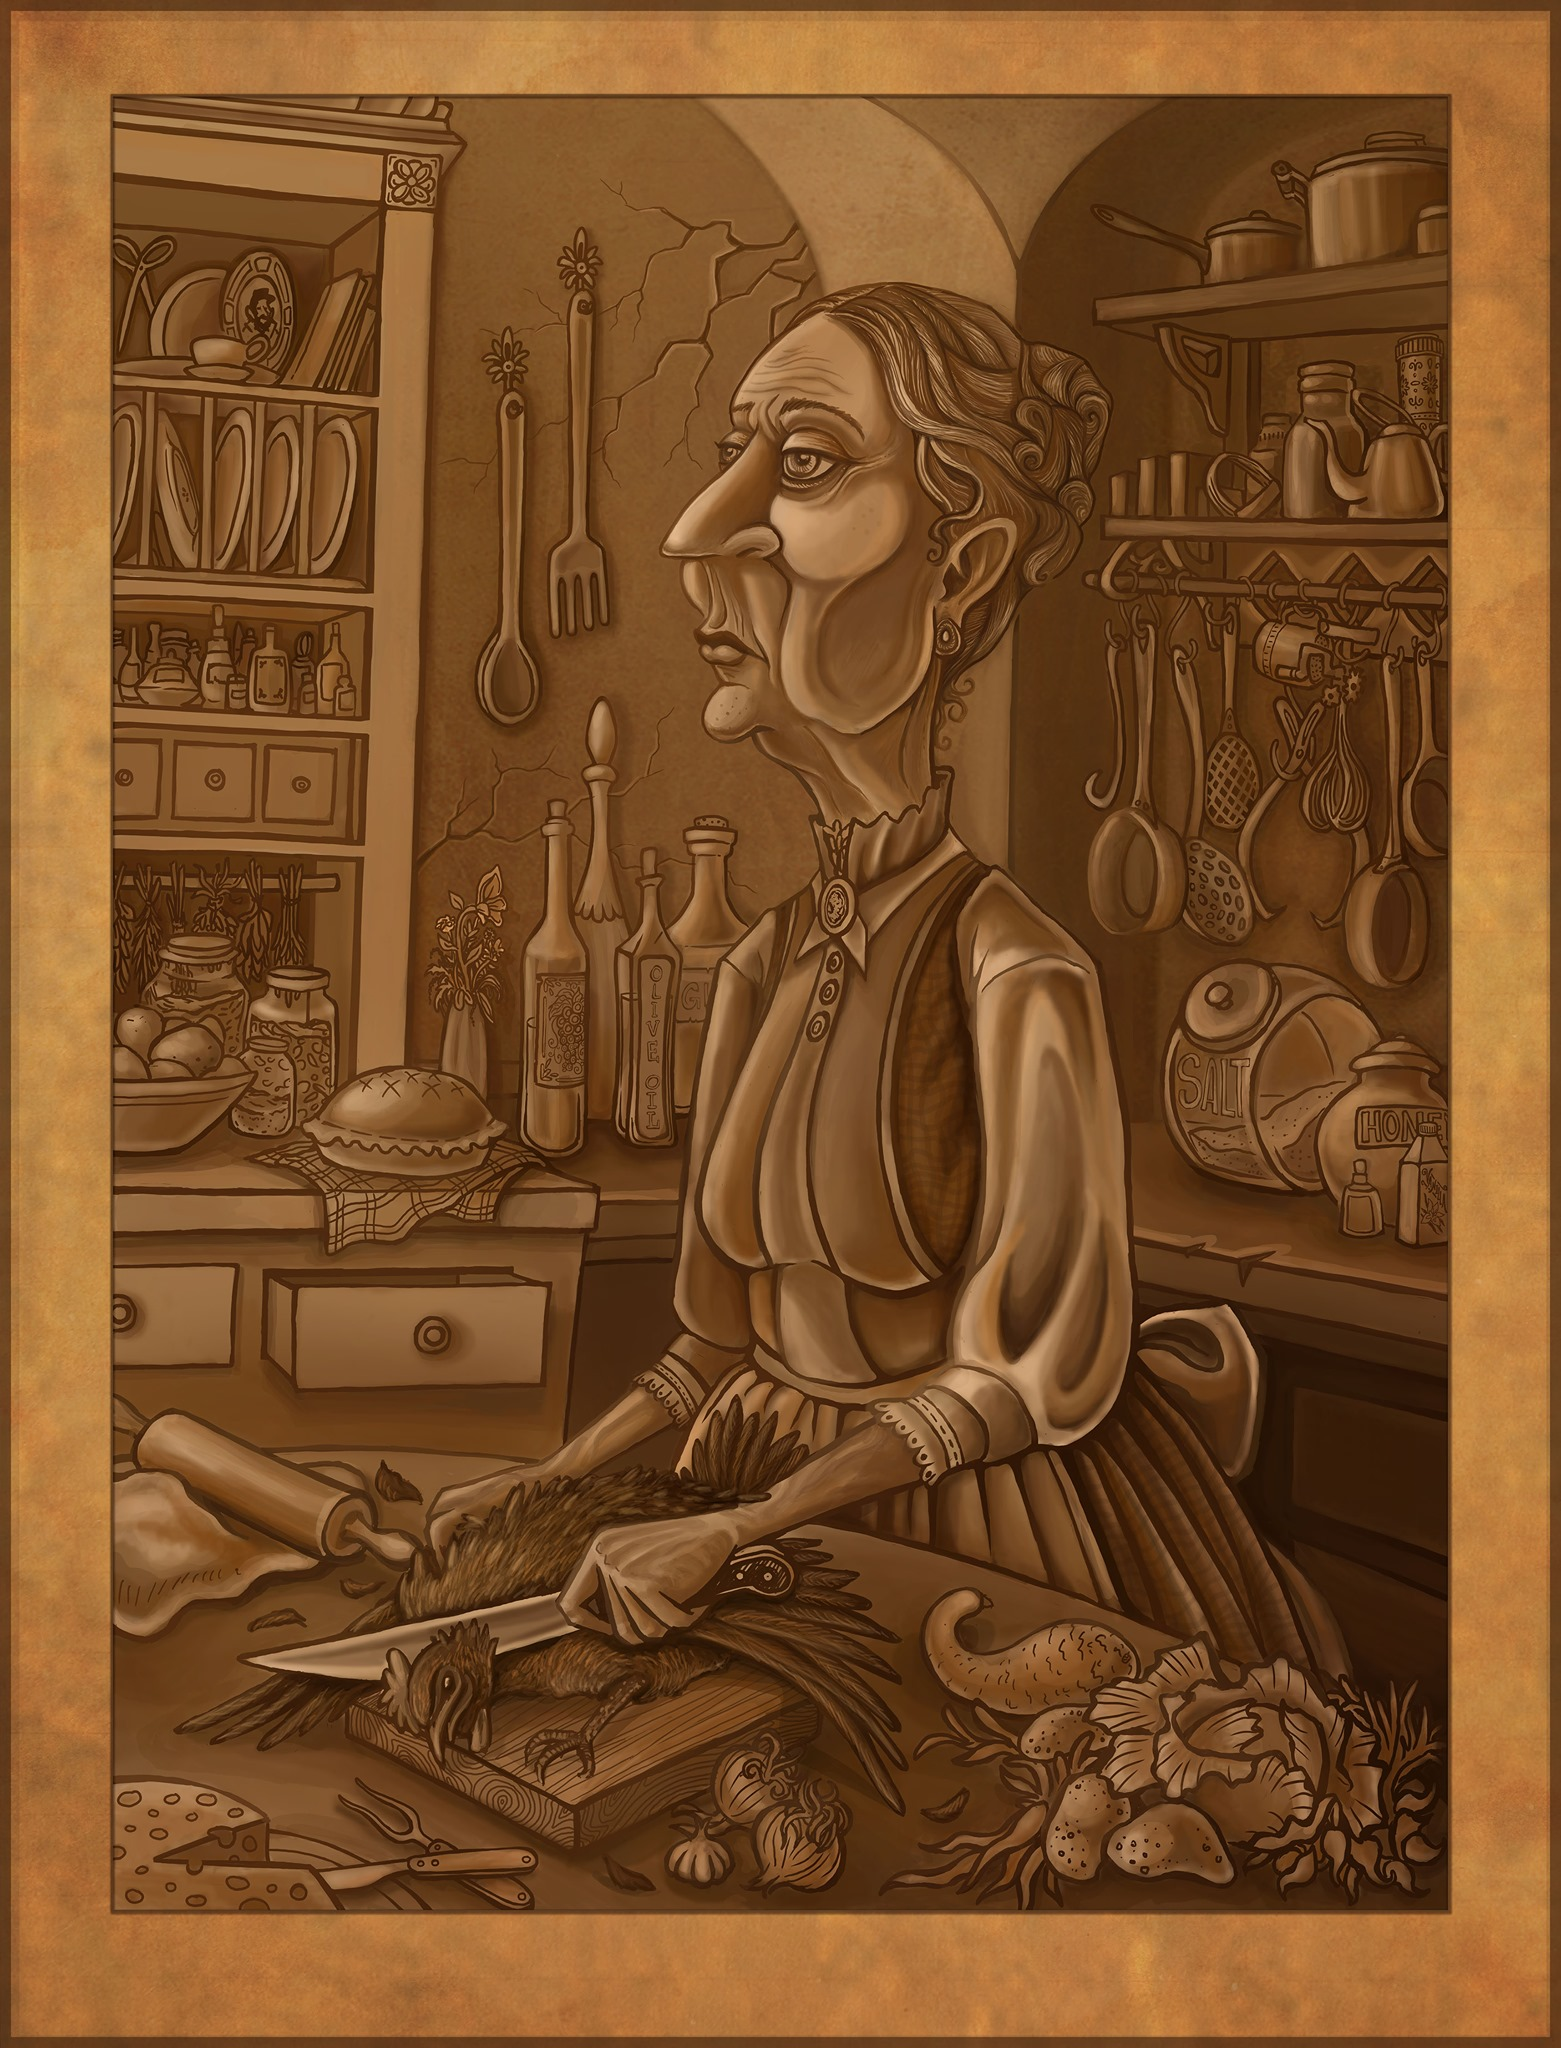 Victorian sepia tone woman maid cook in kitchen chopping chicken. Childrens book fantasy illustration